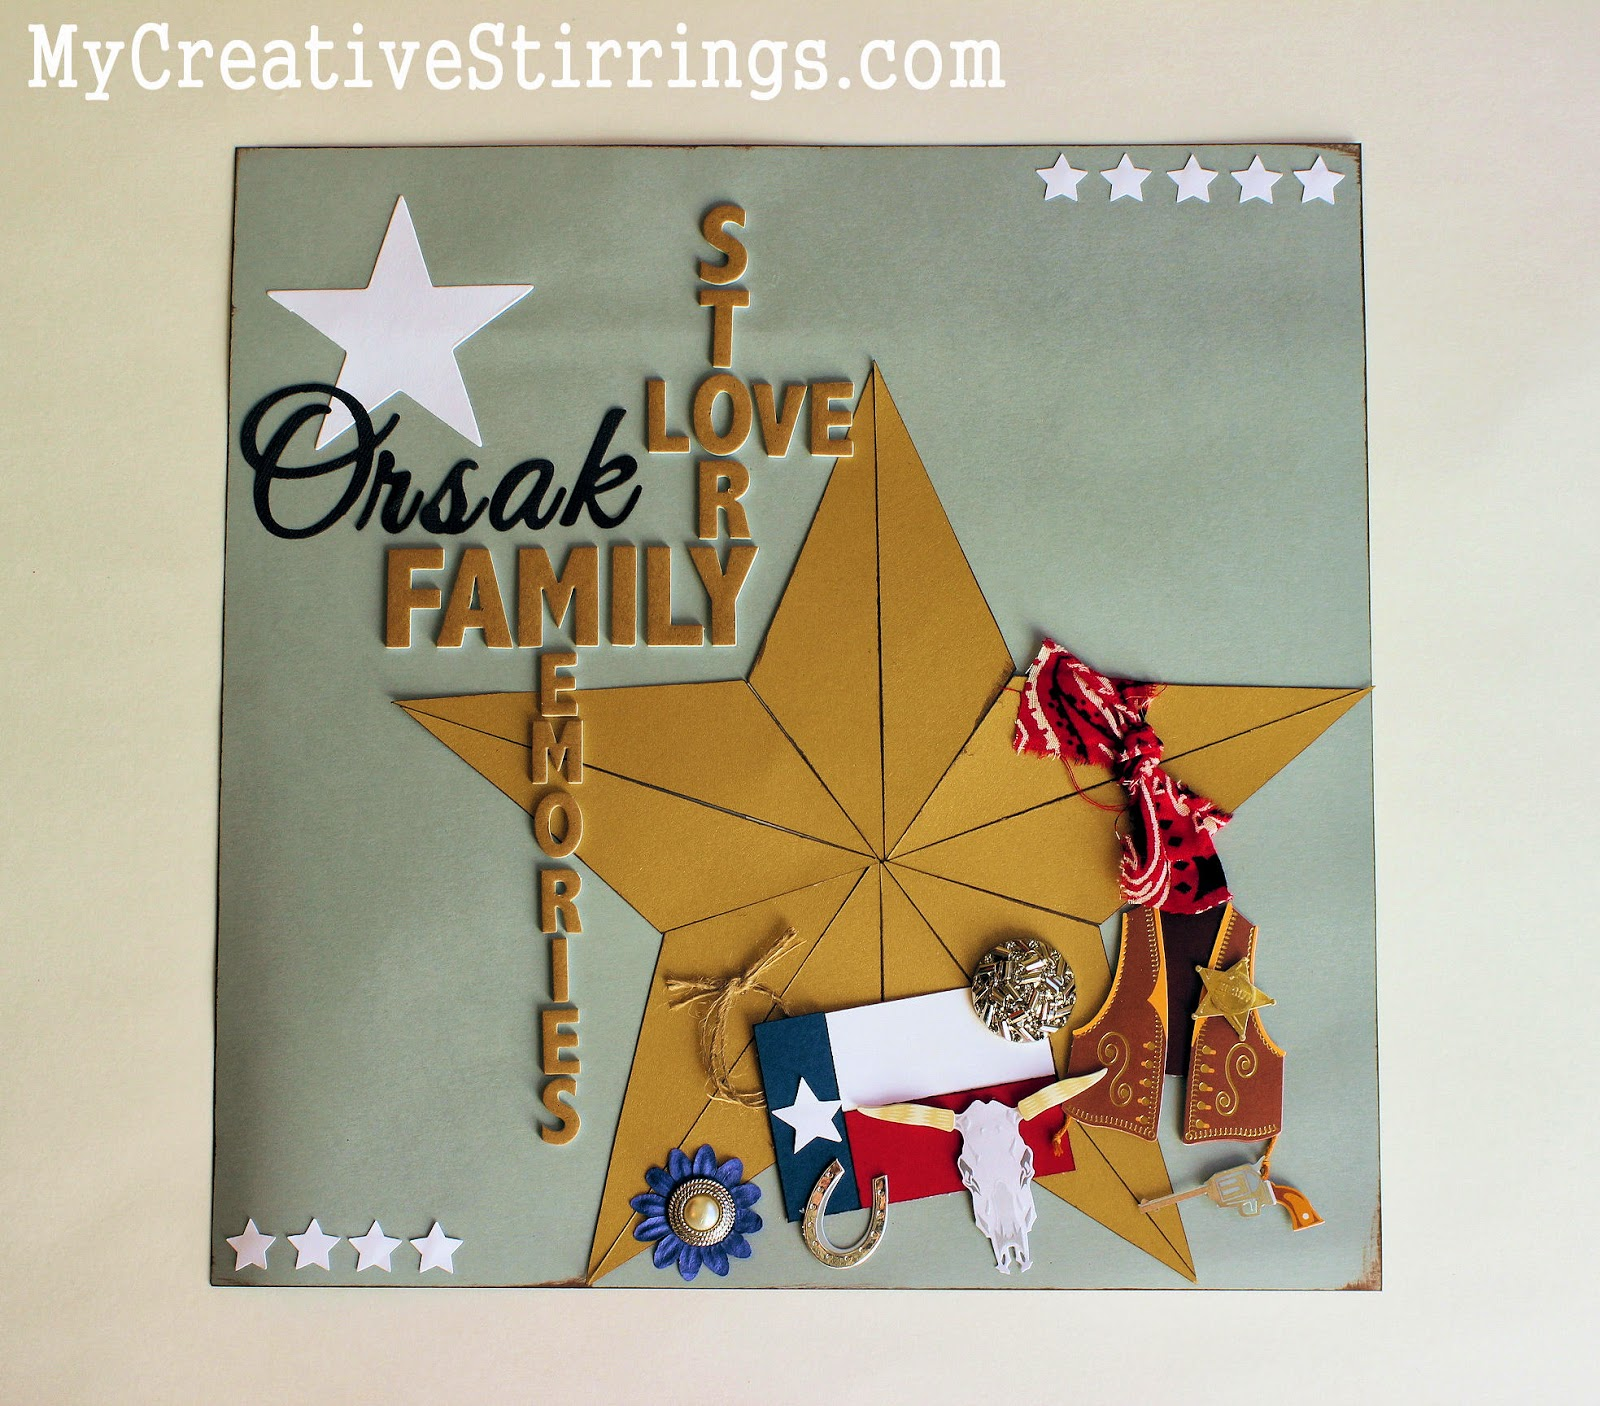 Scrapbook theme ideas - I Created A Texan Owl Themed Scrapbook For My Family This Last Christmas And Have Decided To Share Some Of The Page Ideas It Will Probably Take Me A Couple